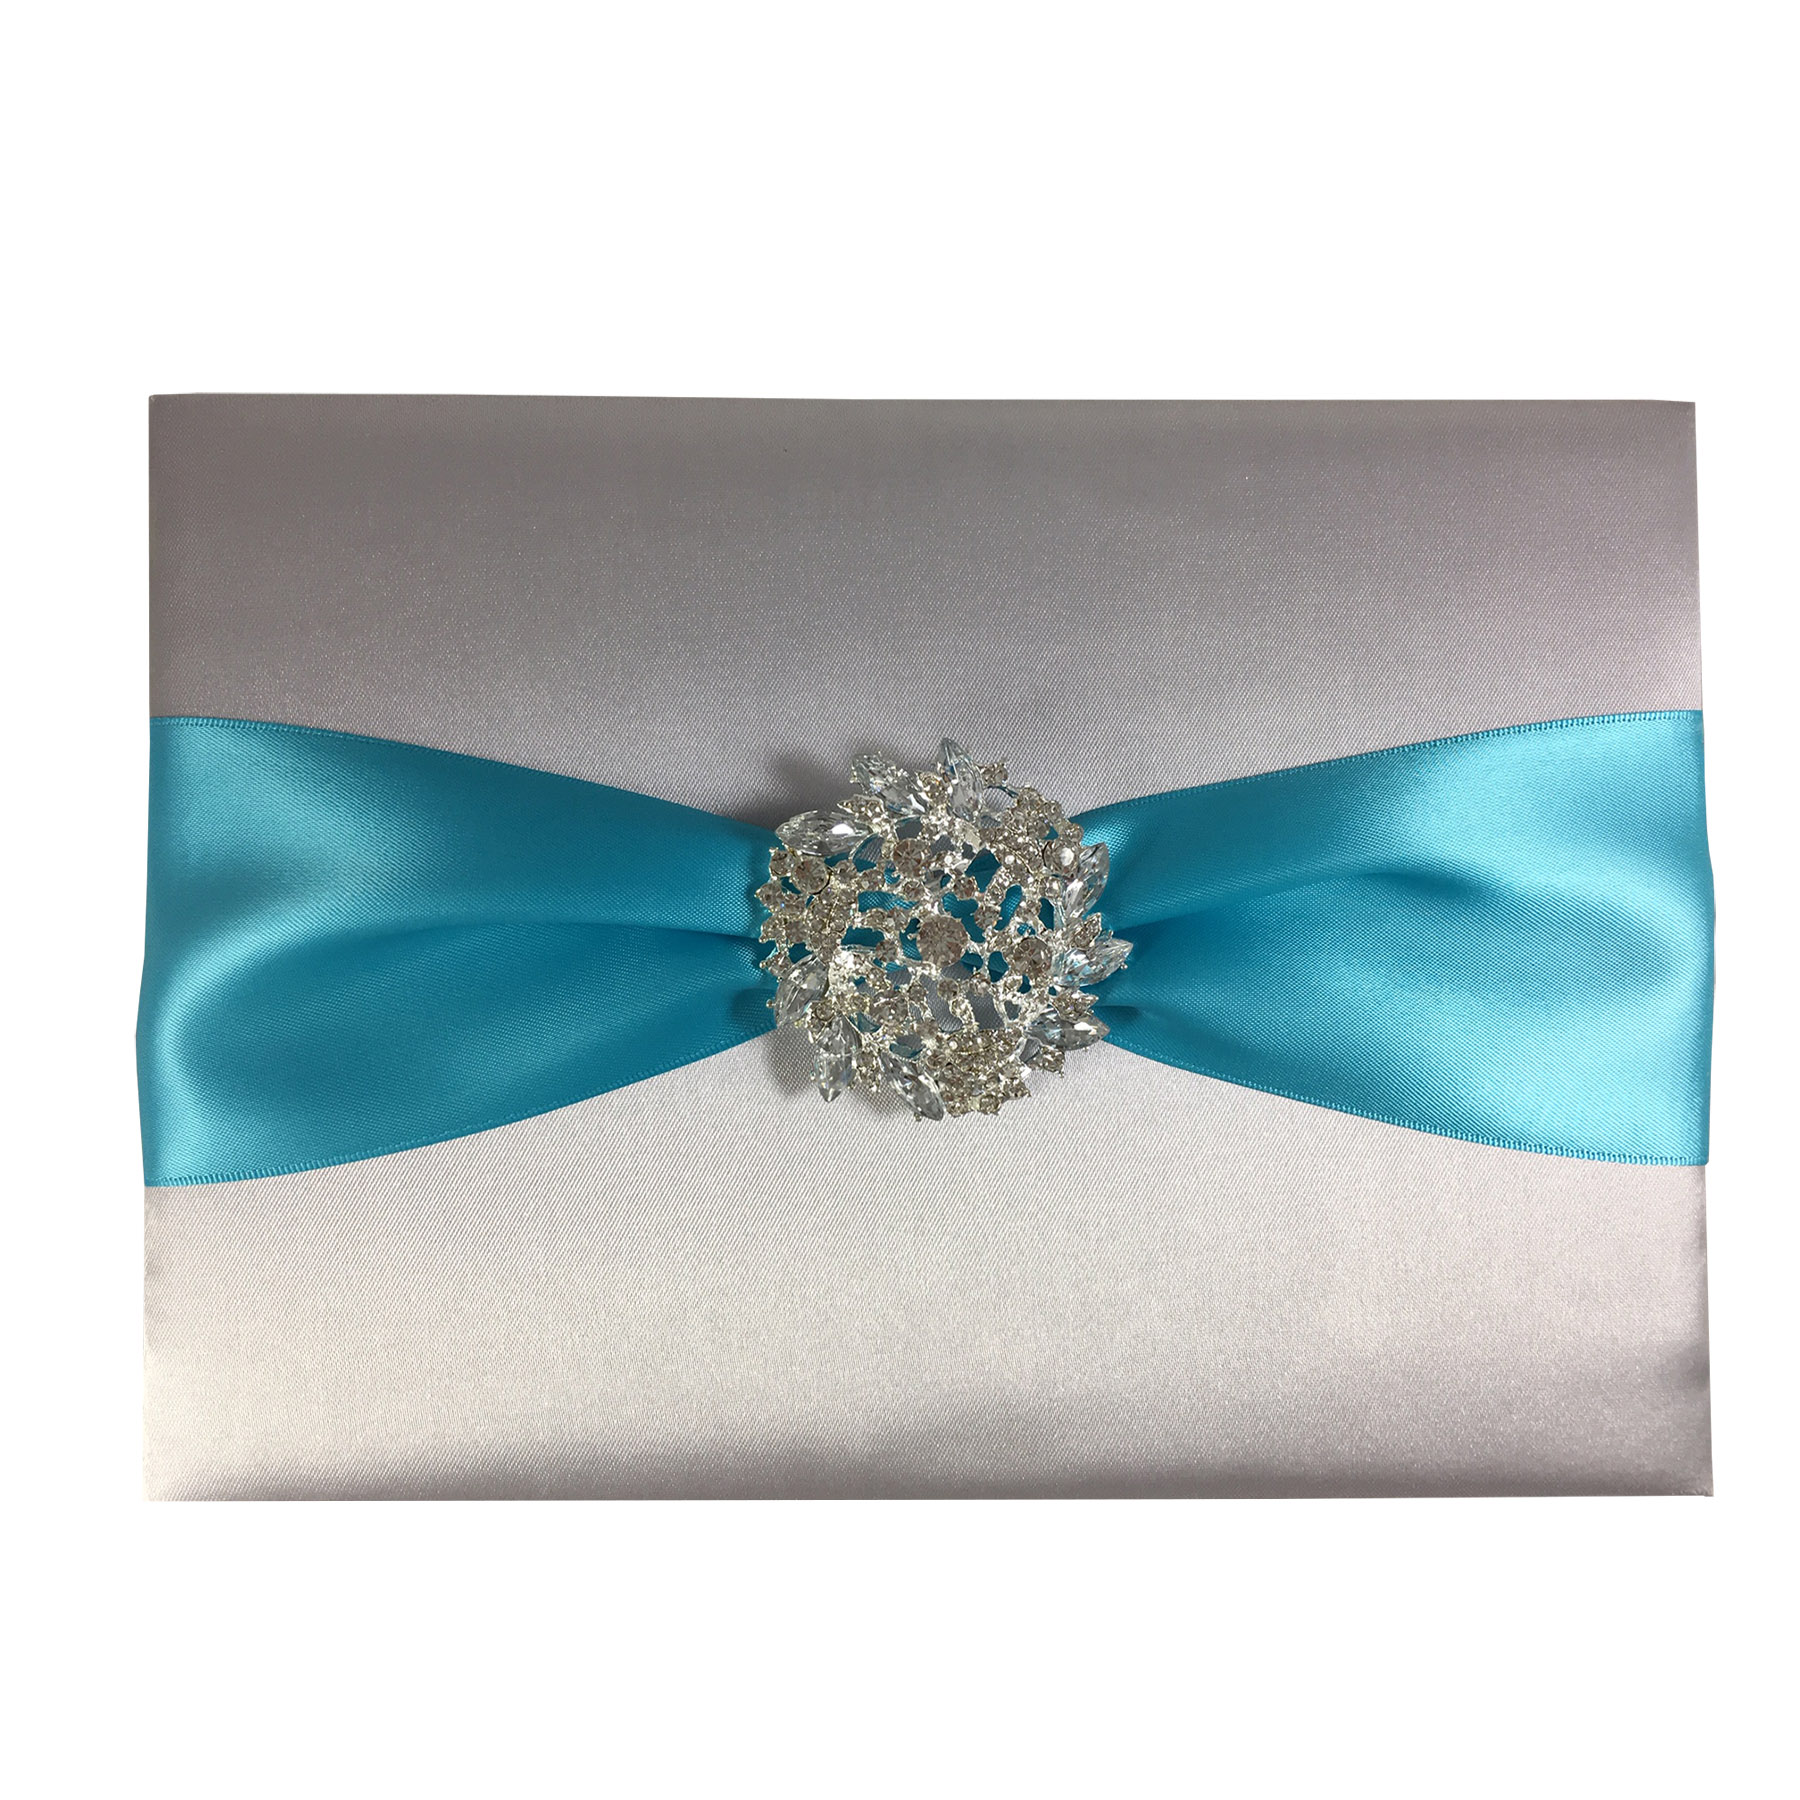 Crystal brooch embellished silk wedding guestbook